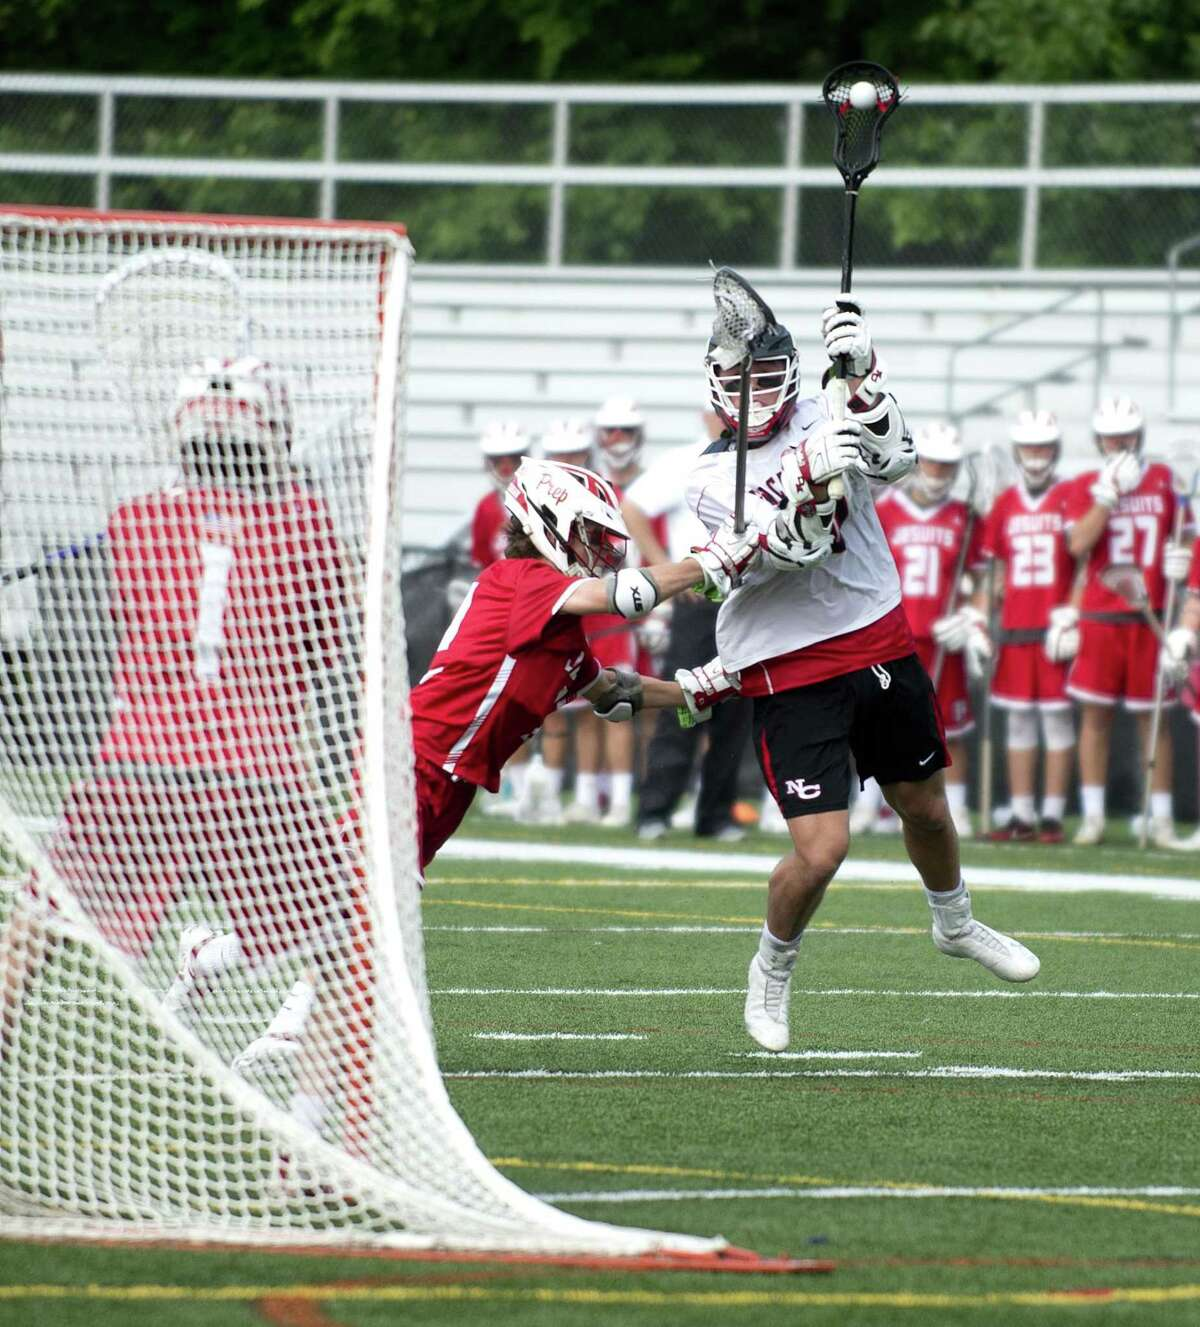 New Canaan's Quintin O'Connell scores a goal against Fairfield Prep during Saturday's Class L boys lacrosse quarterfinal game at New Canaan High School on June 2, 2018.